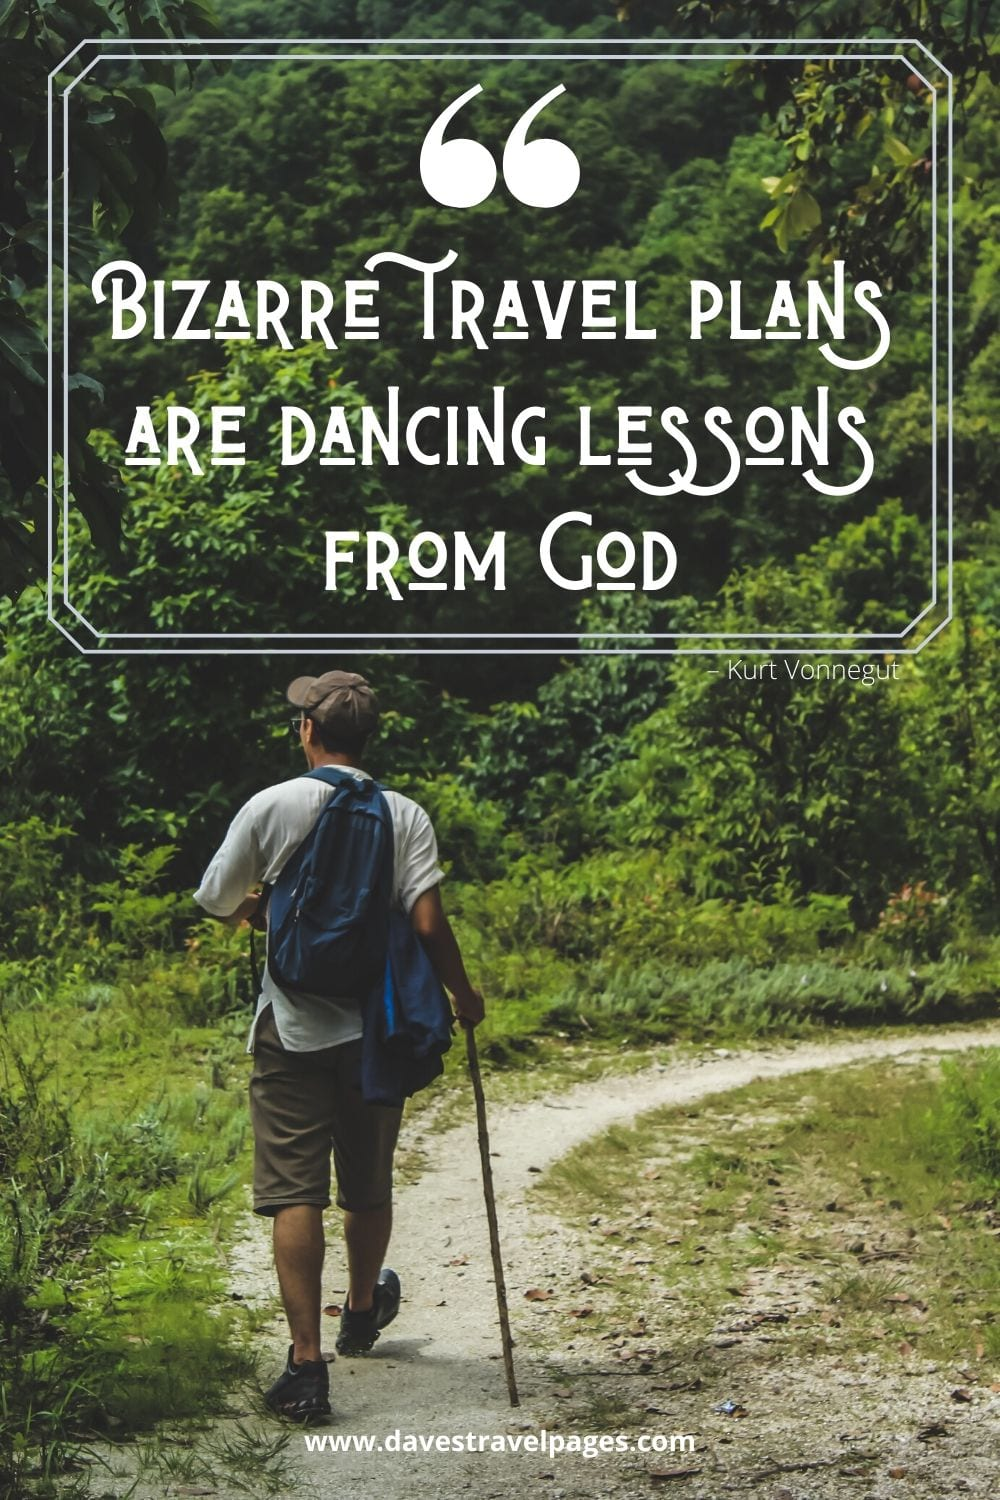 """Quotes about travel planning: """"Bizarre travel plans are dancing lessons from God."""" – Kurt Vonnegut"""